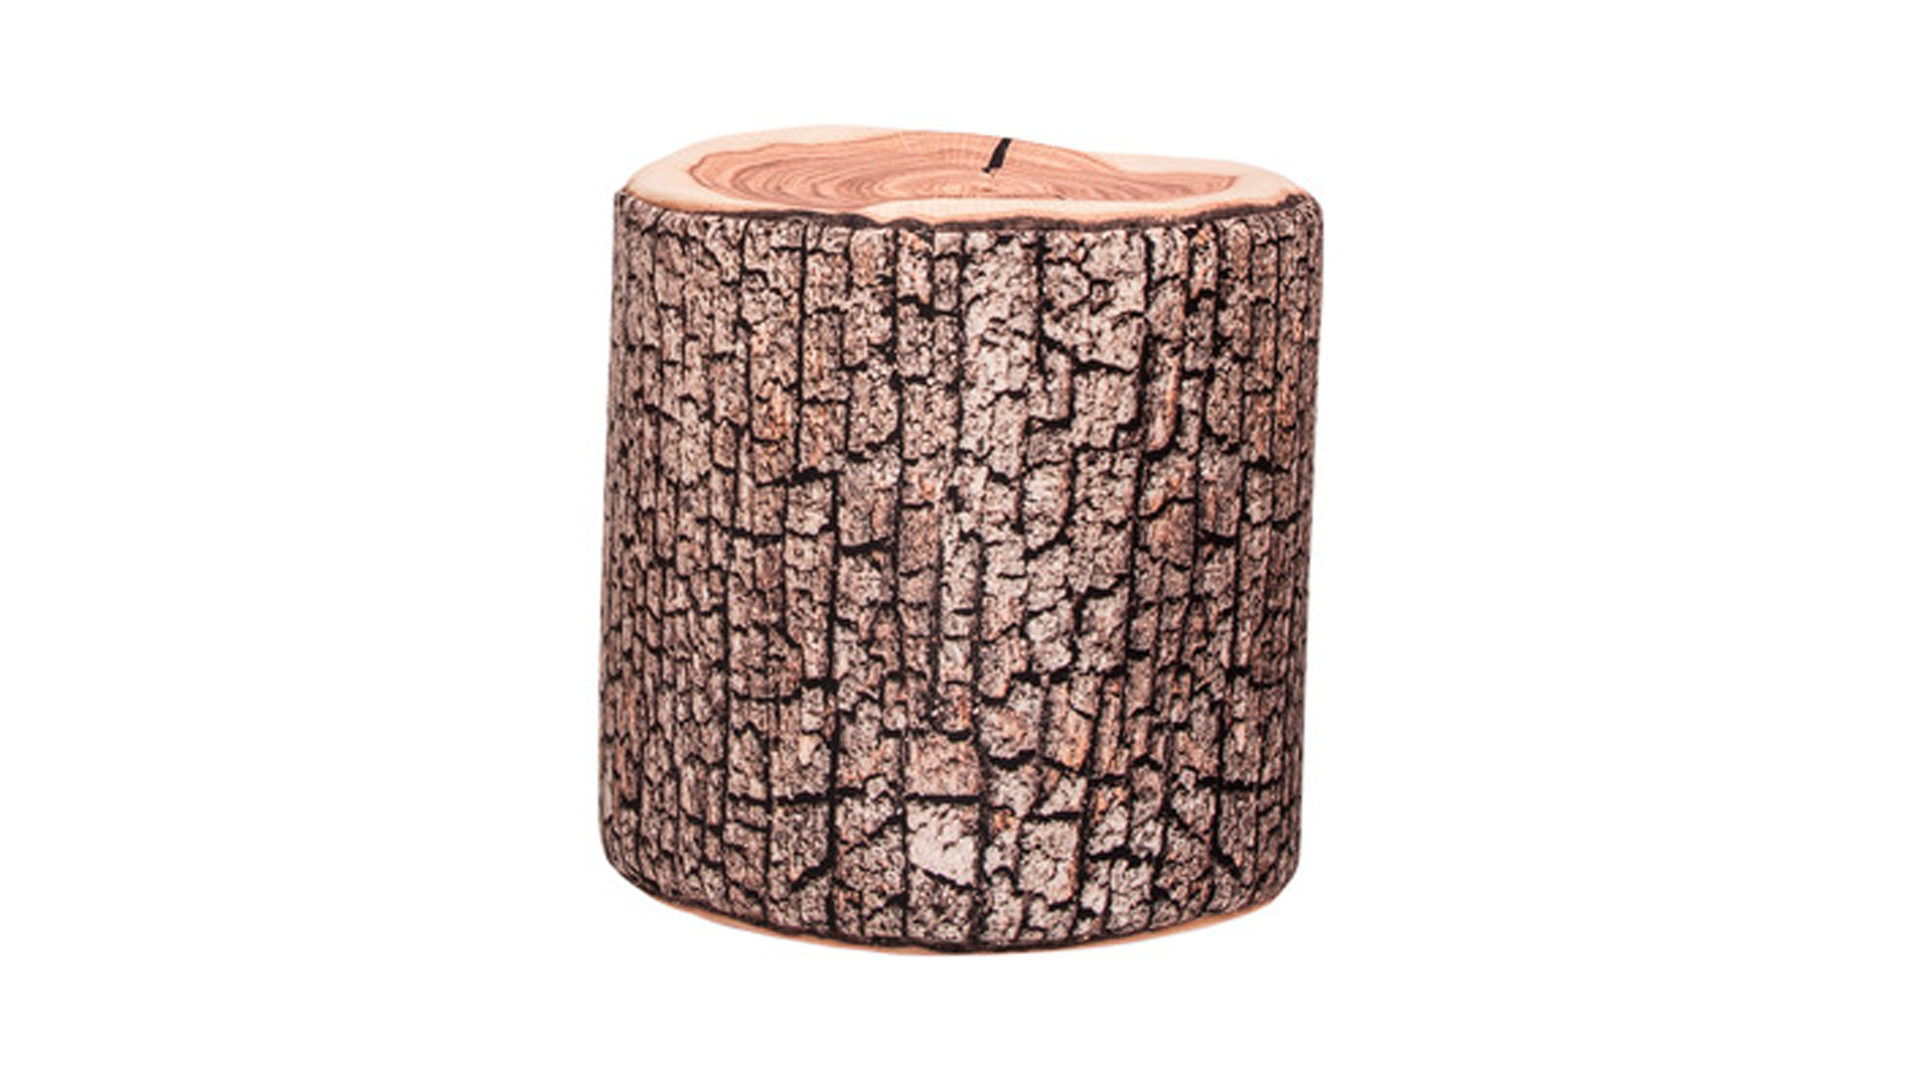 Sitzsack-Hocker Magma sitting point aus Mikrofaser in Braun SITTING POINT Sitzsack-Hocker Dot Com W als Sitzmöbelood Mikrofaser mit Holzprint – Höhe ca. 50 cm